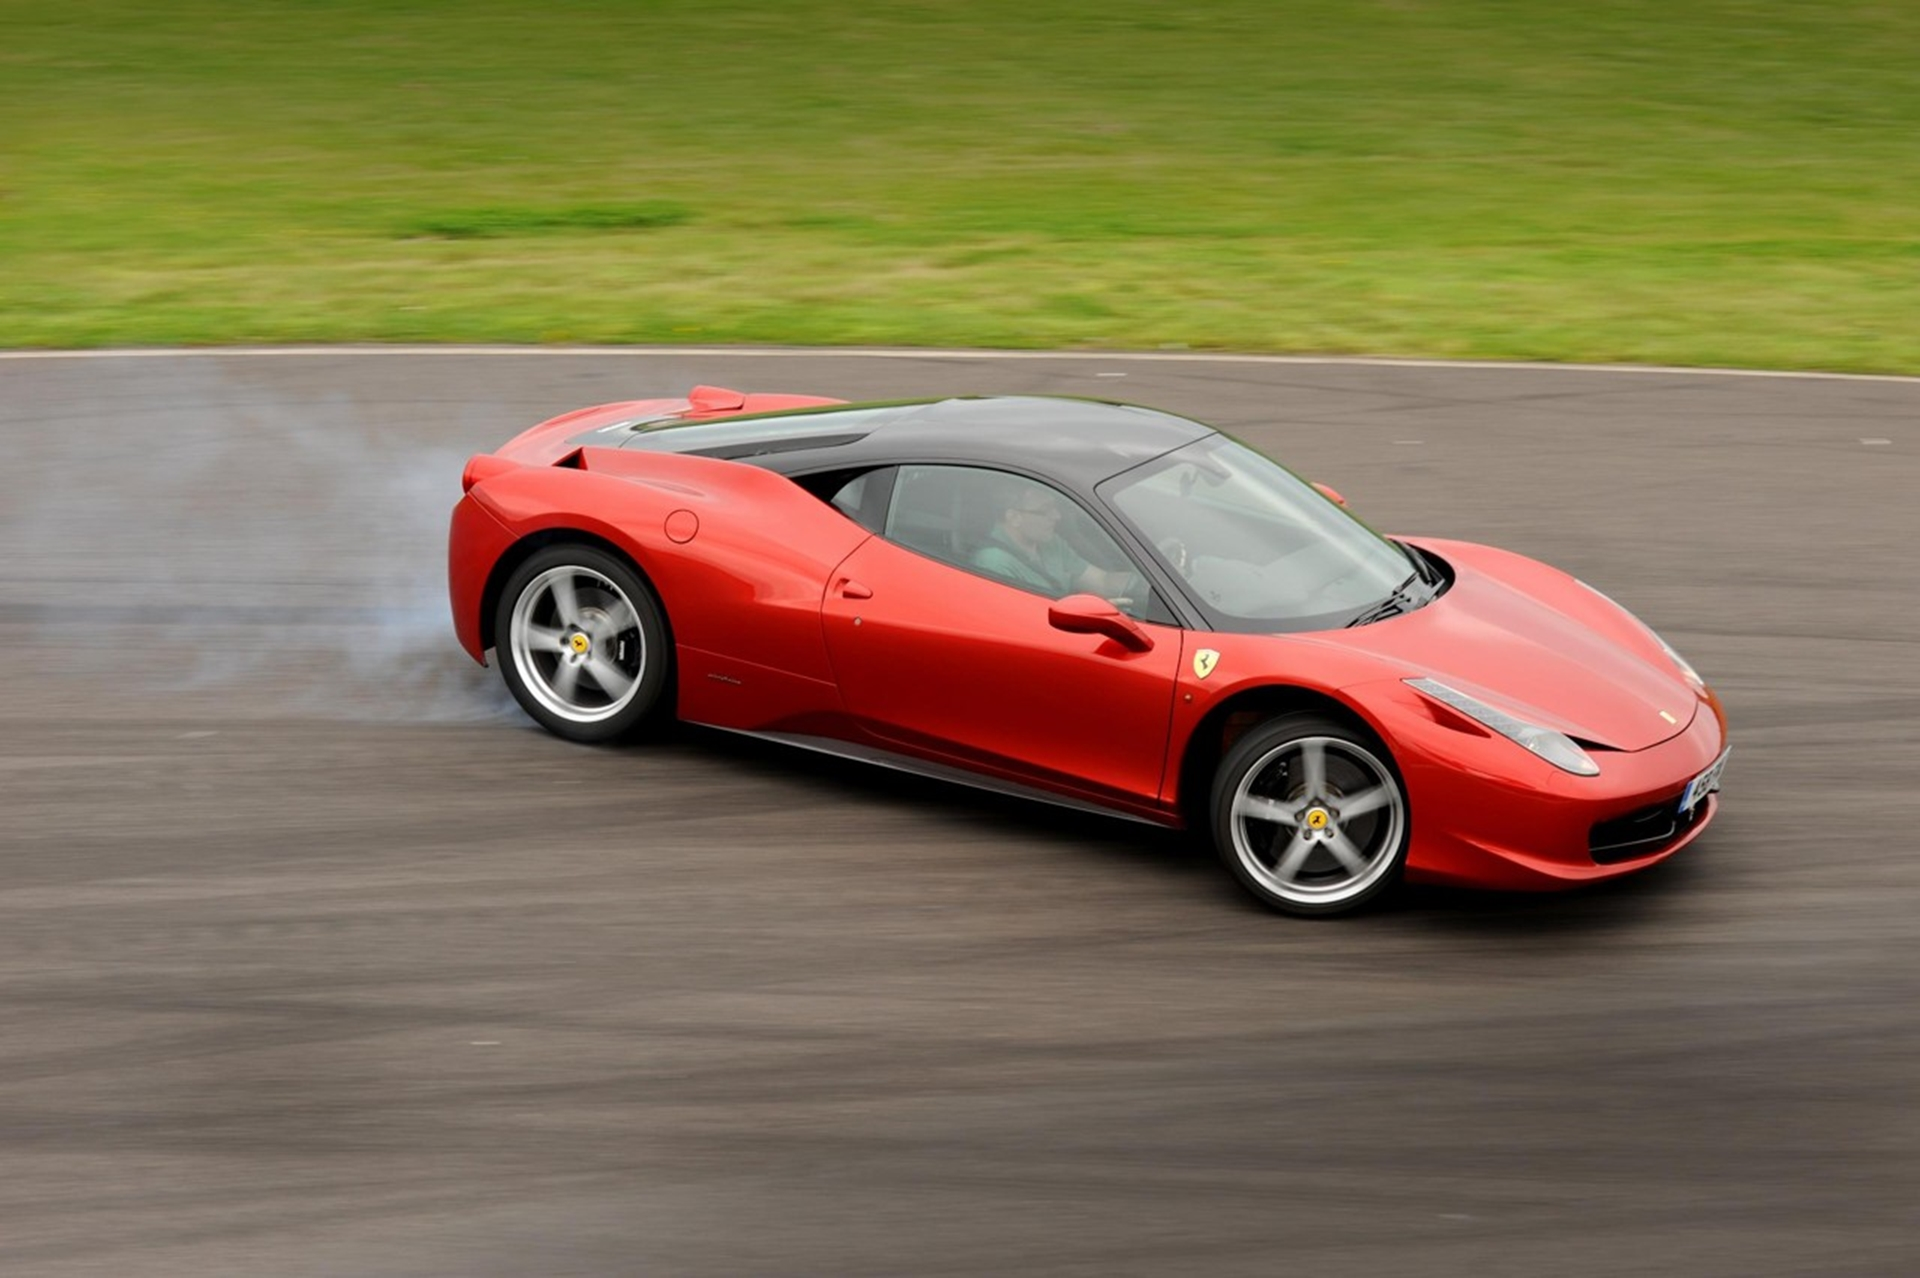 Ferrari Performance Car of the year